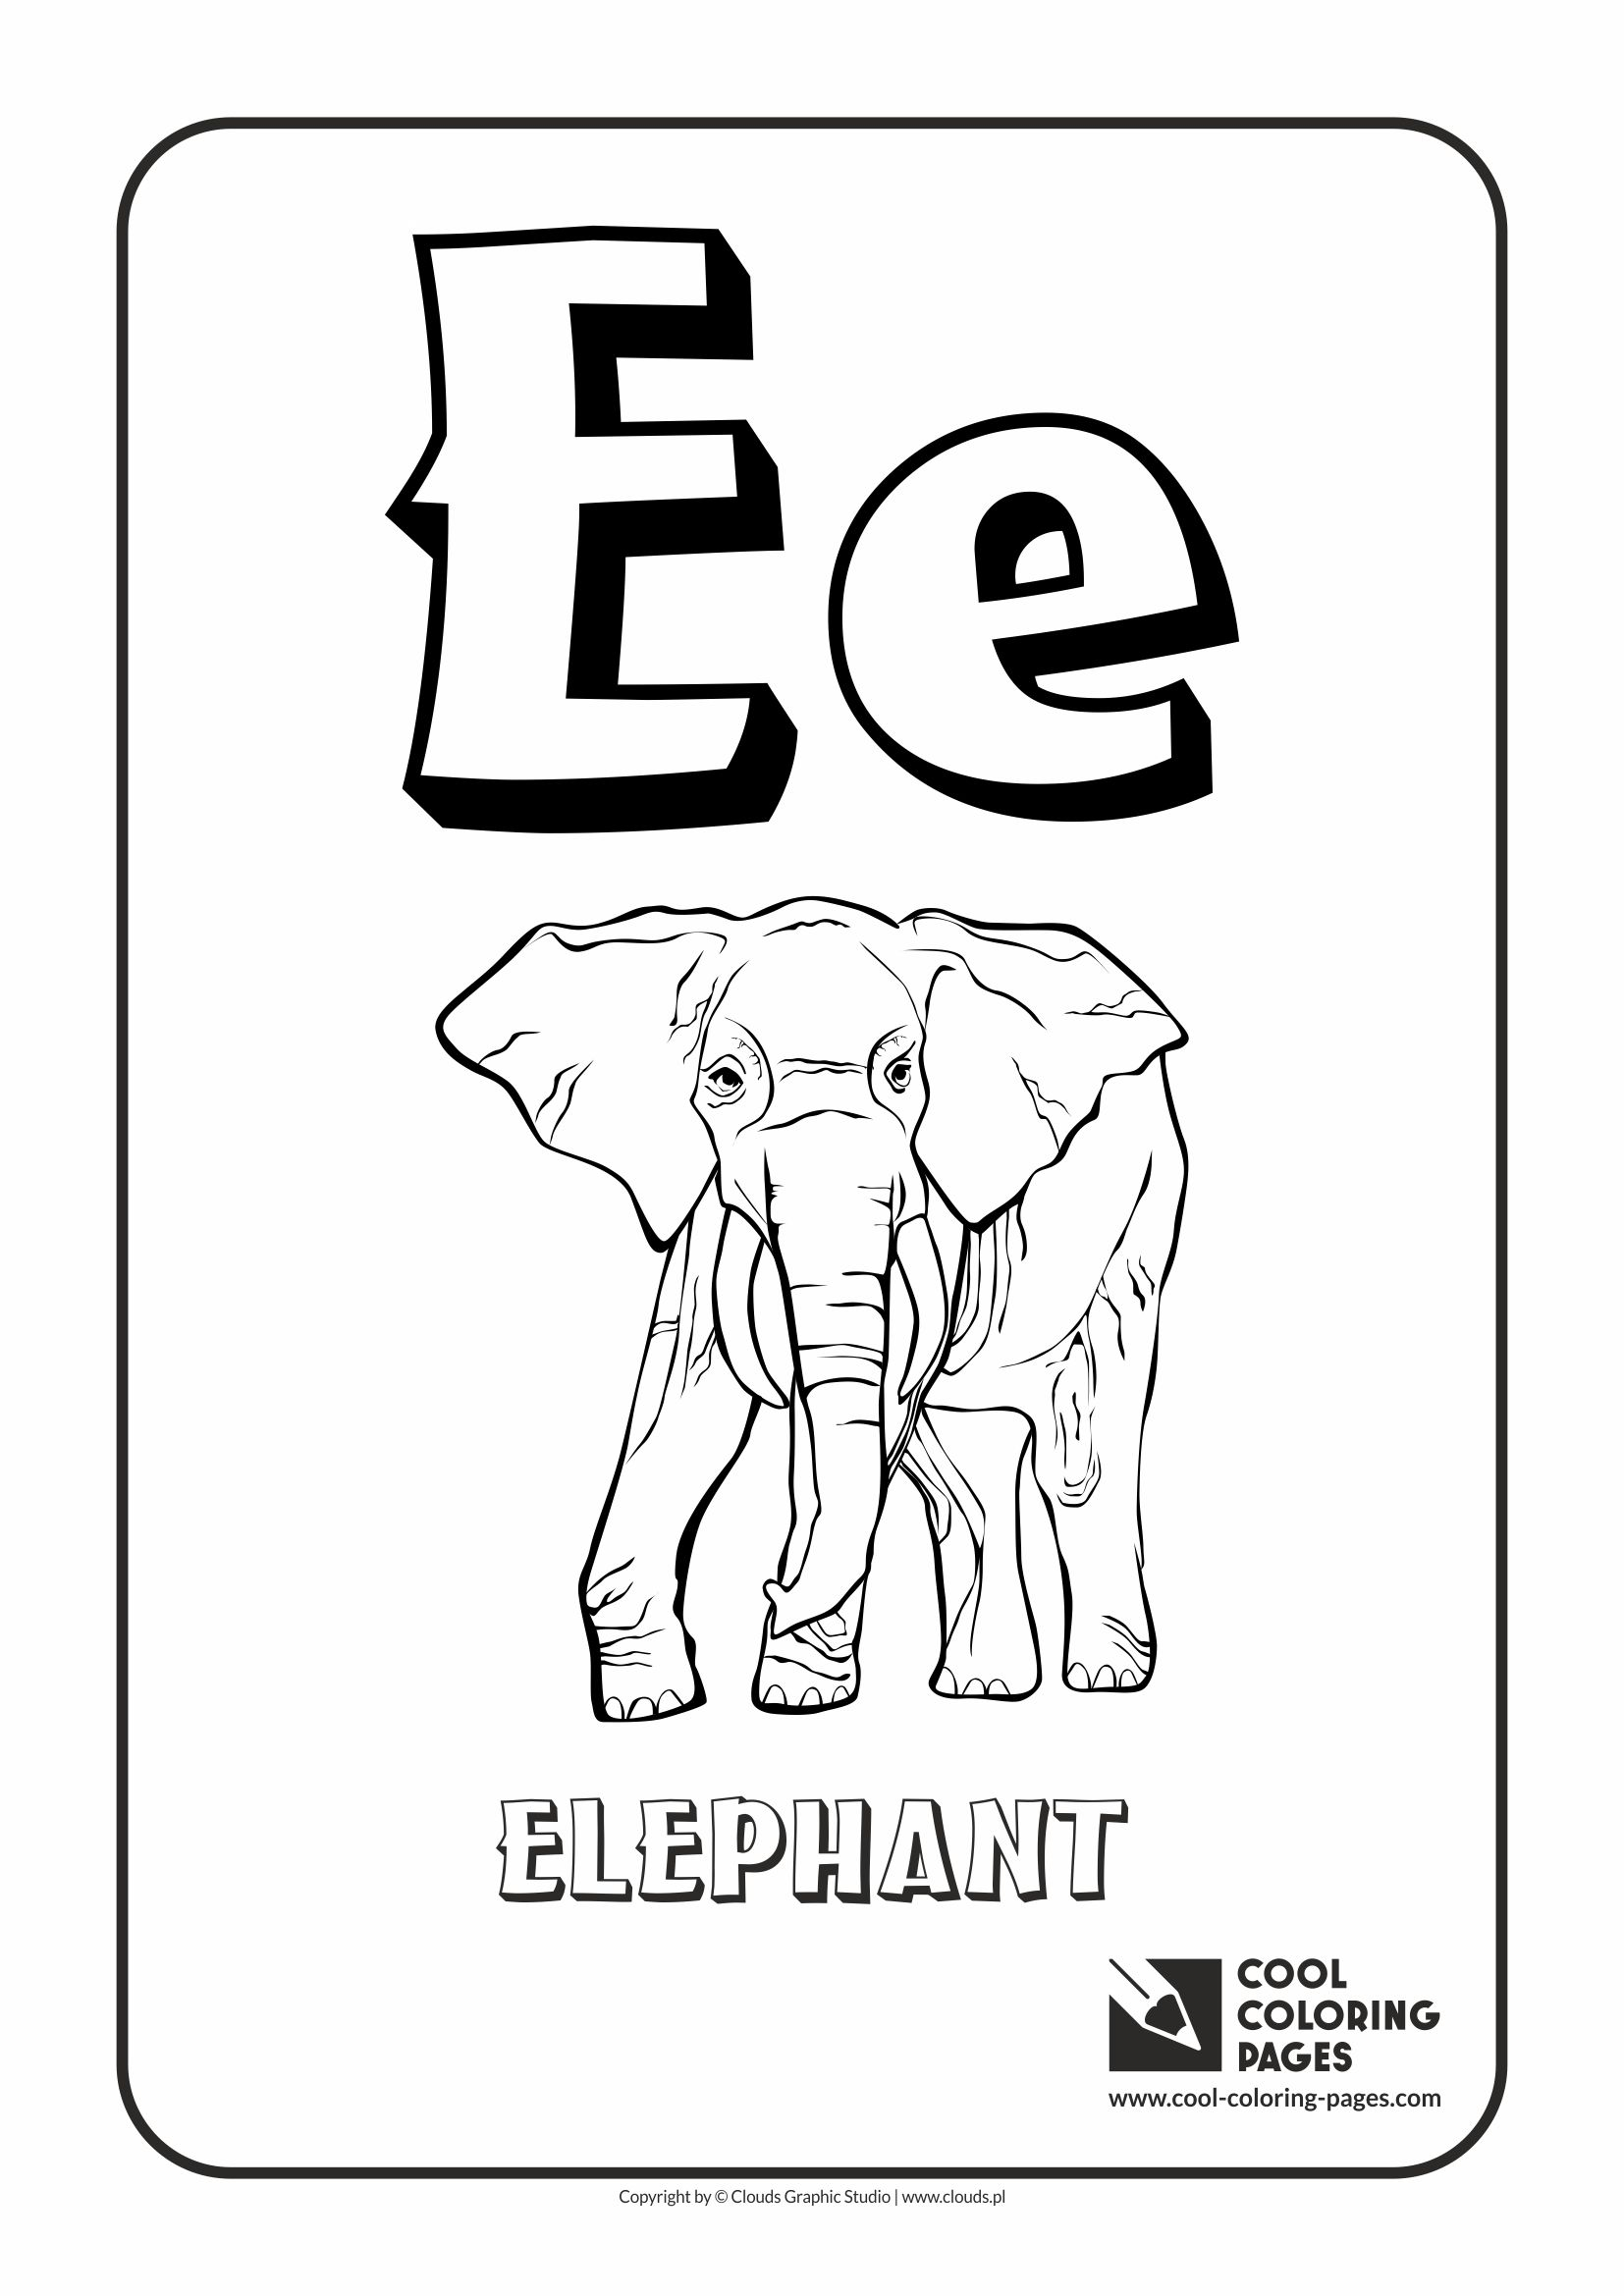 Cool Coloring Pages Letter E Coloring Alphabet Cool Coloring Pages Free Educational Coloring Pages And Activities For Kids